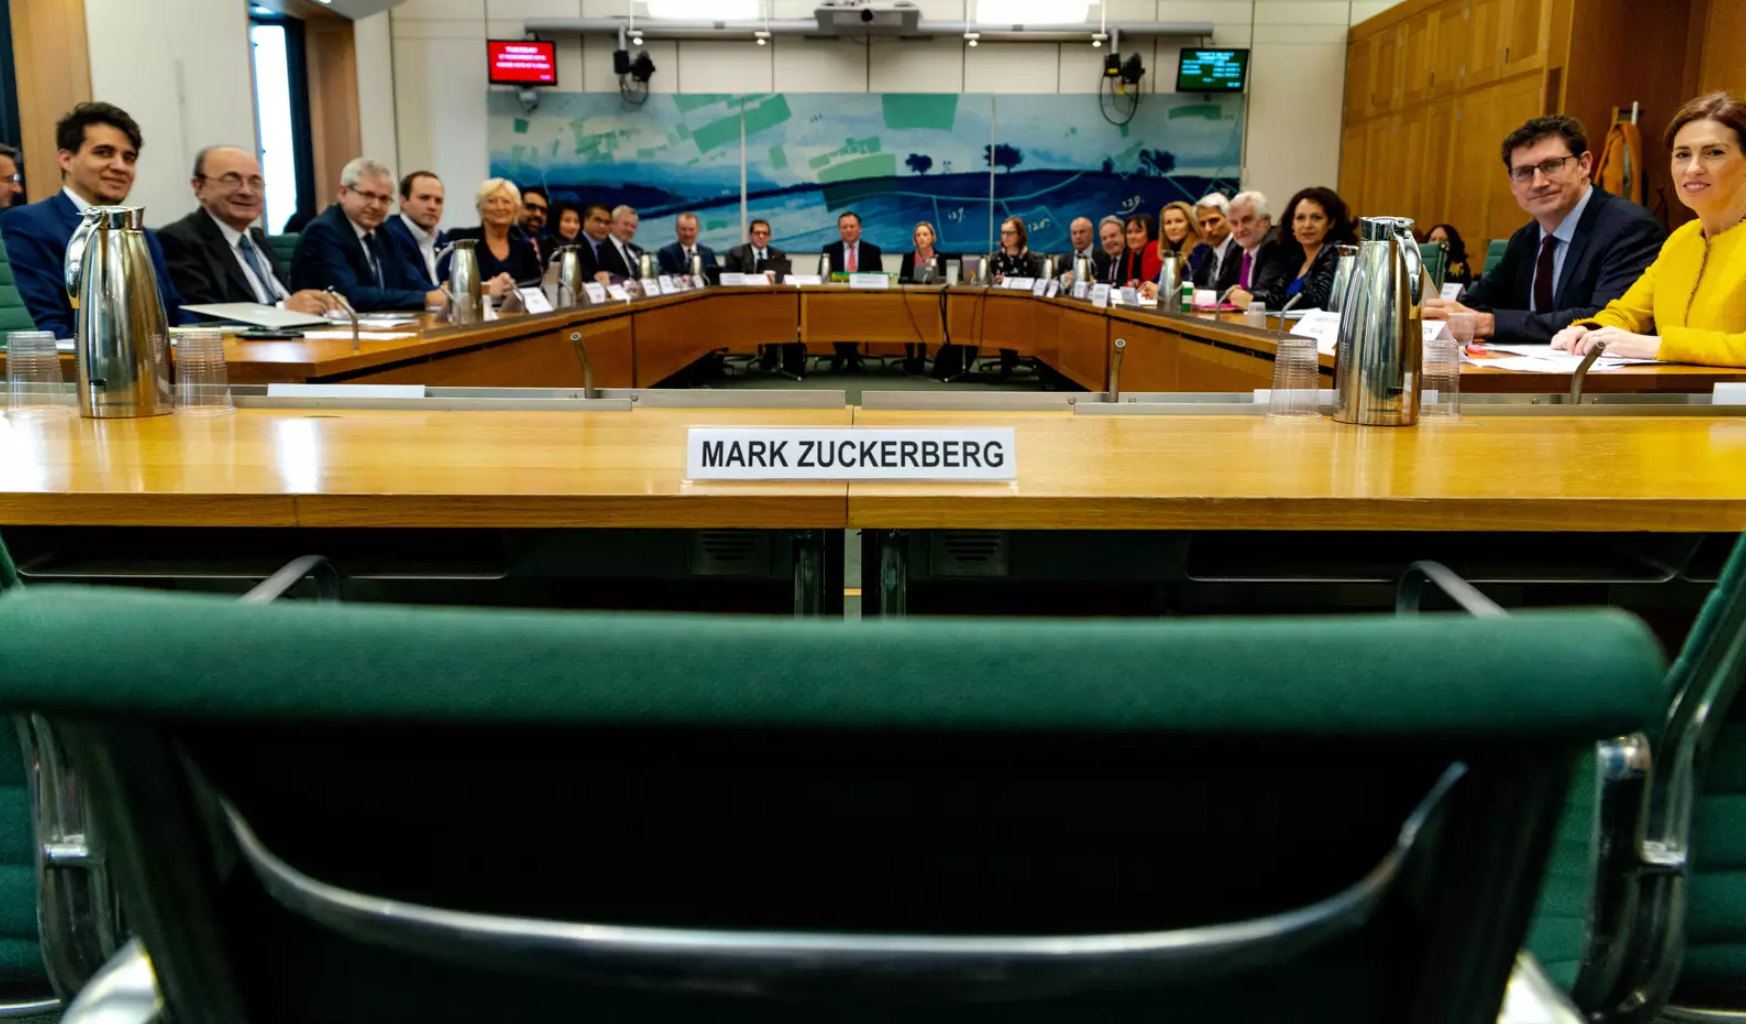 An empty chair represents Mark Zuckerberg's refusal to attend a hearing in the U.K. parliament, where representatives from nine countries gathered to demand answers from Facebook on Nov. 27 in London.